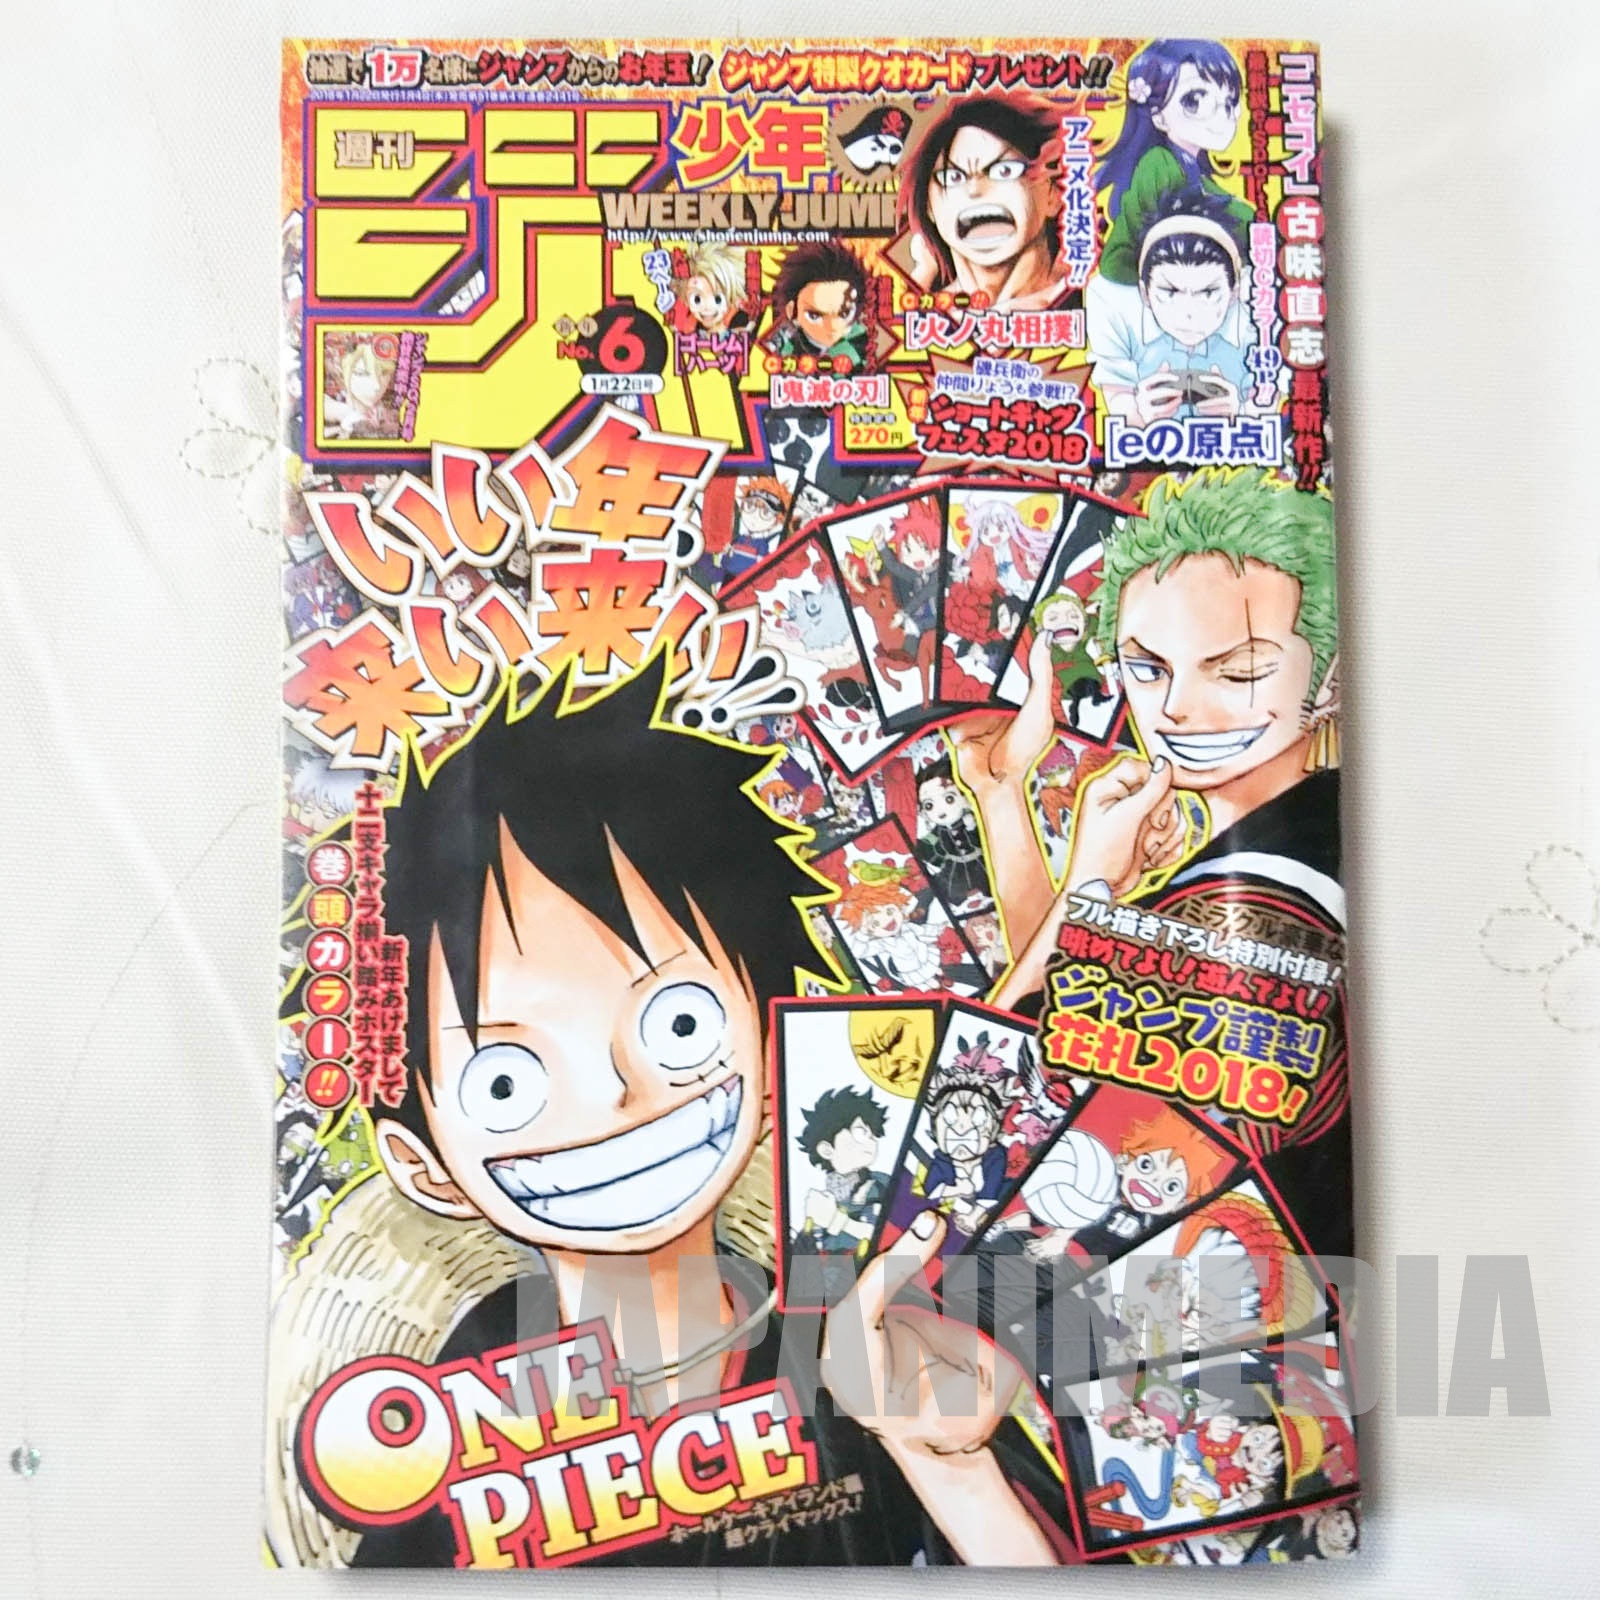 Weekly Shonen JUMP Vol.06 2018 One Piece / Japanese Magazine JAPAN MANGA